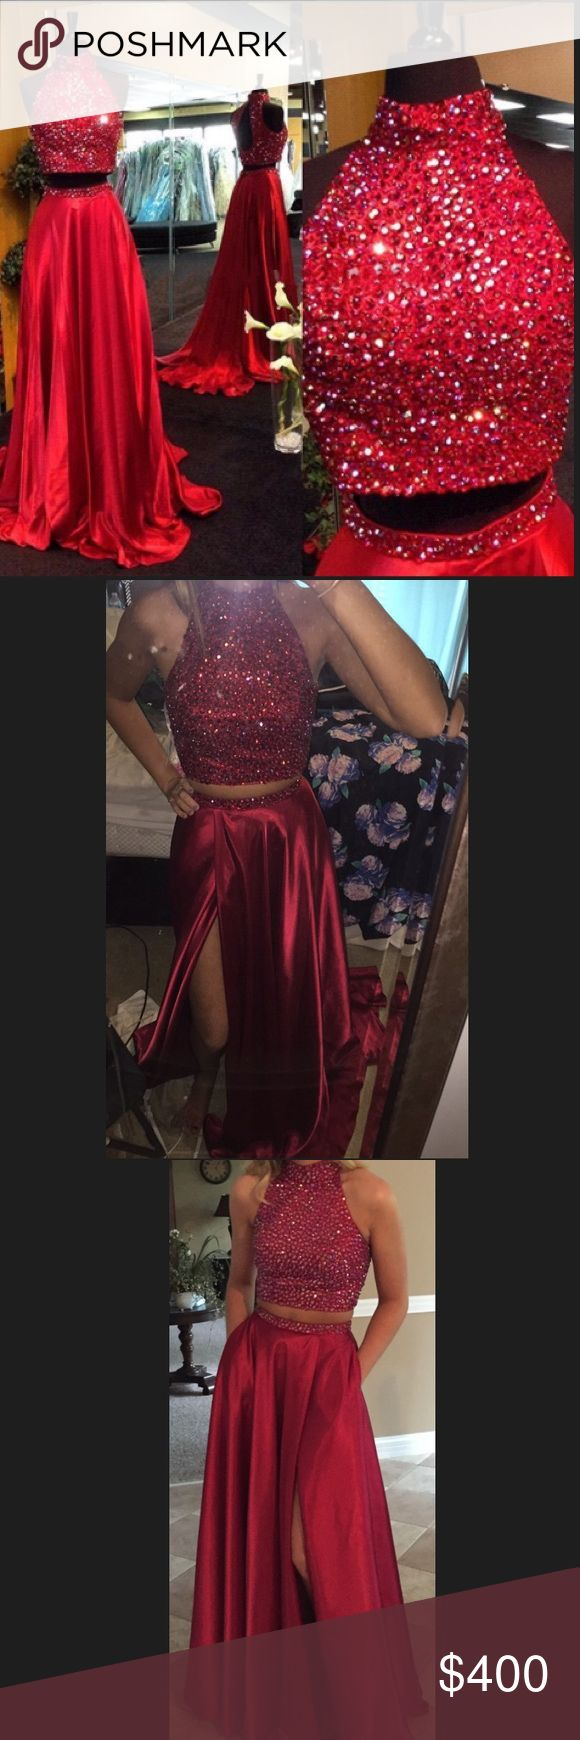 Sherri hill prom dress Red Sherri hill dress, perfect condition. Only worn once. Two piece, slit in the skirt and pockets! Sherri Hill Dresses Prom